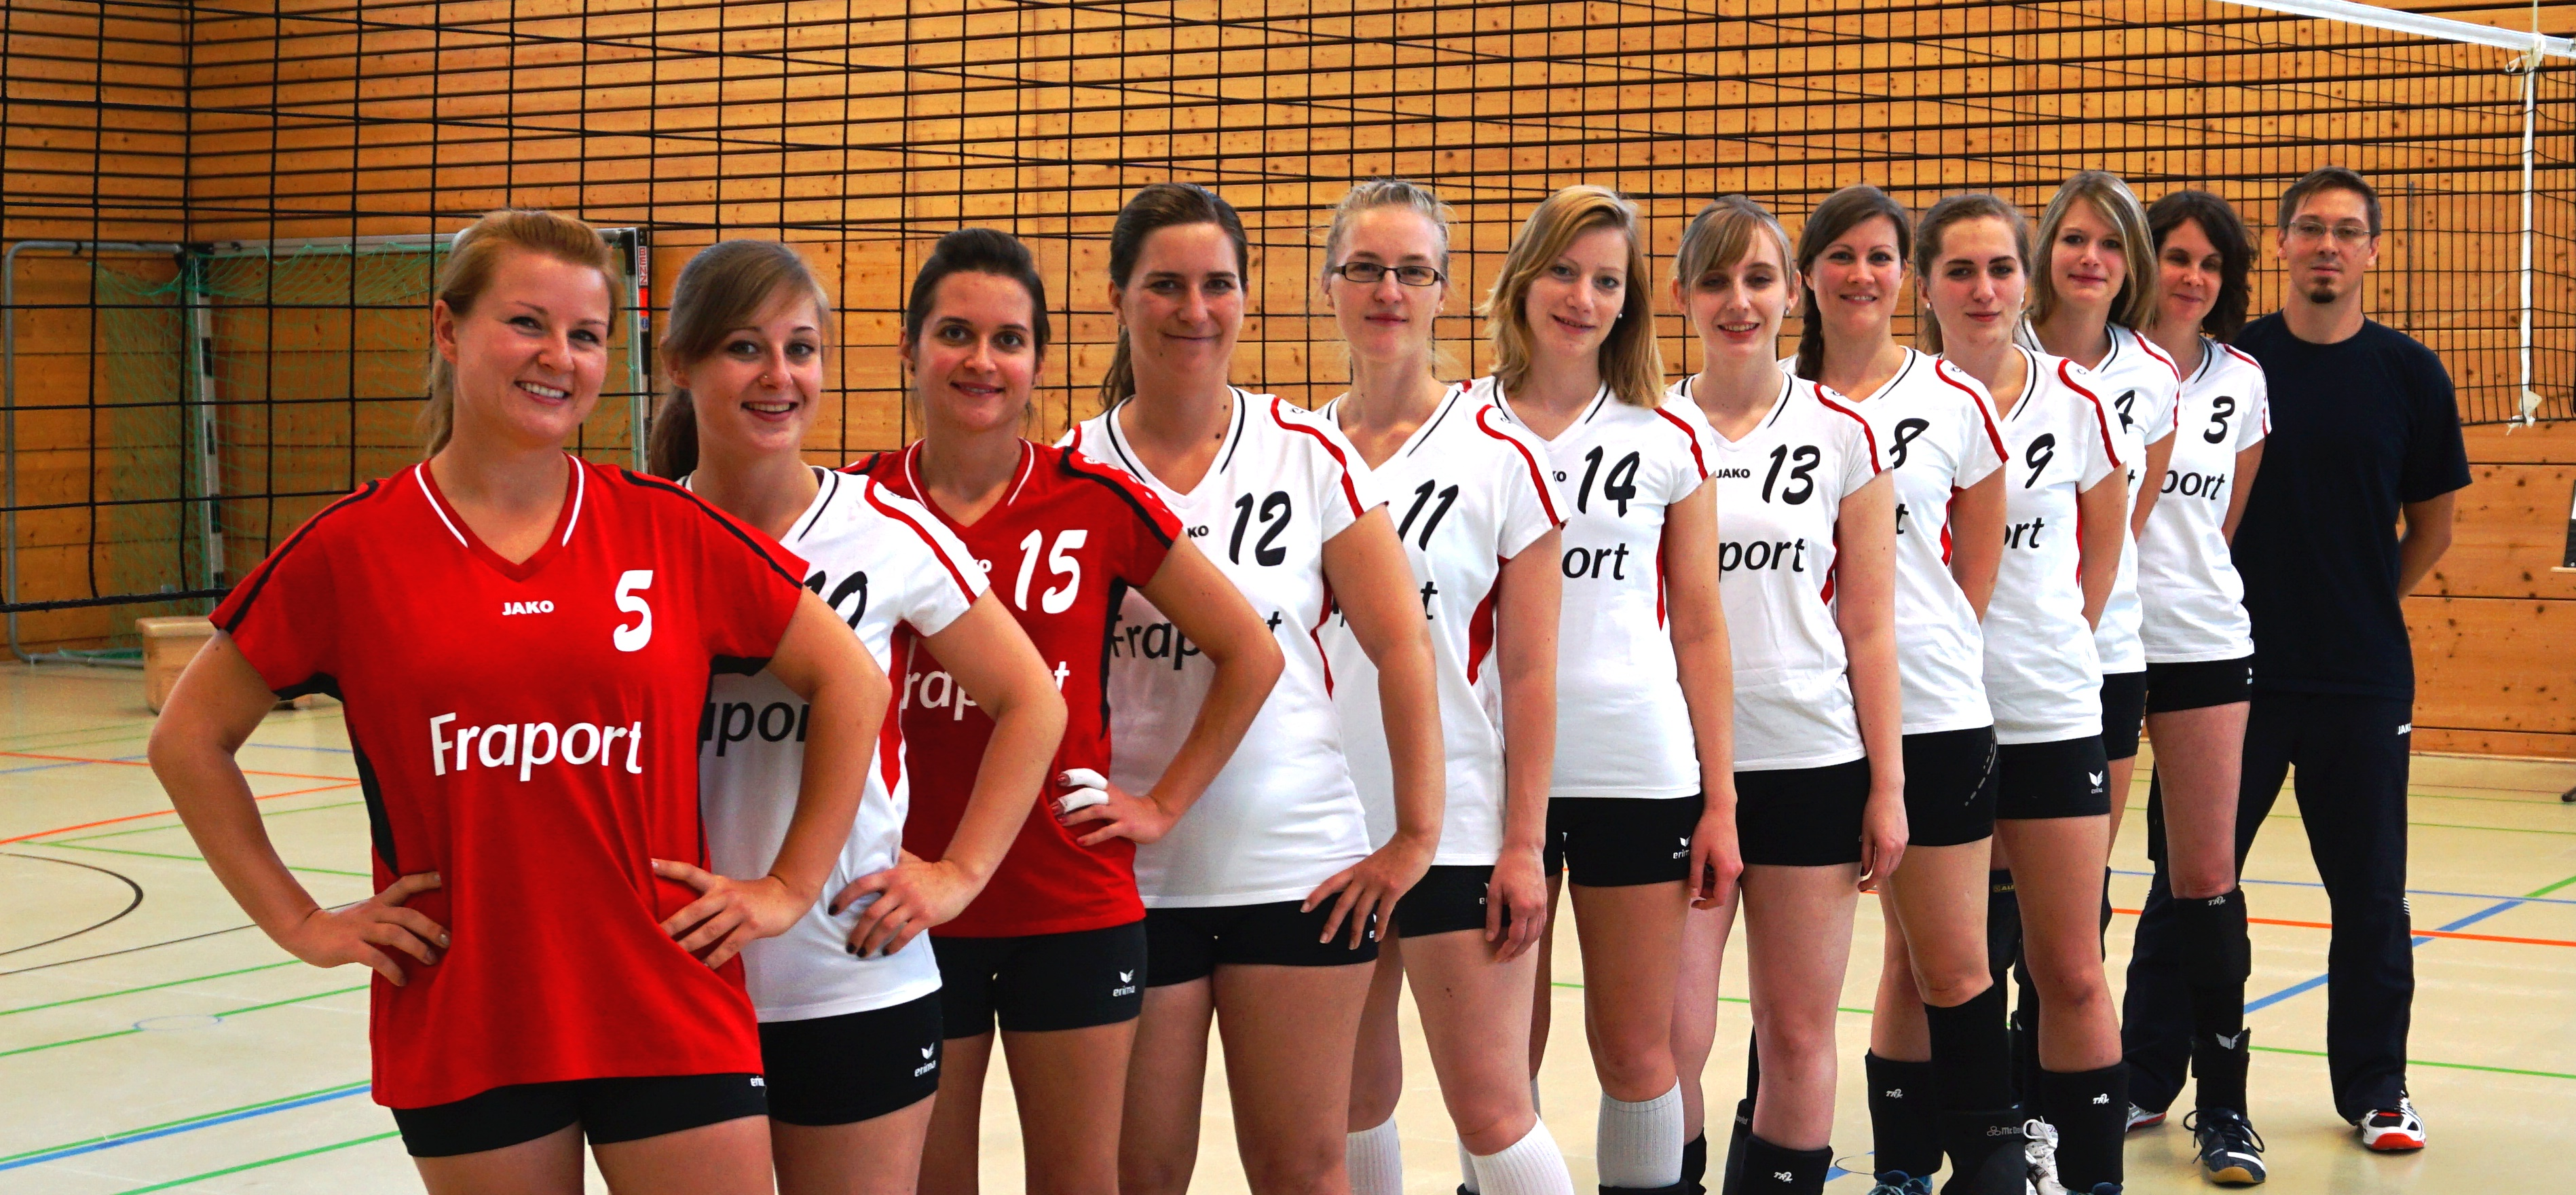 Volleyballmannschaft SSC Bad Vilbel D3/ Bad Vilbel